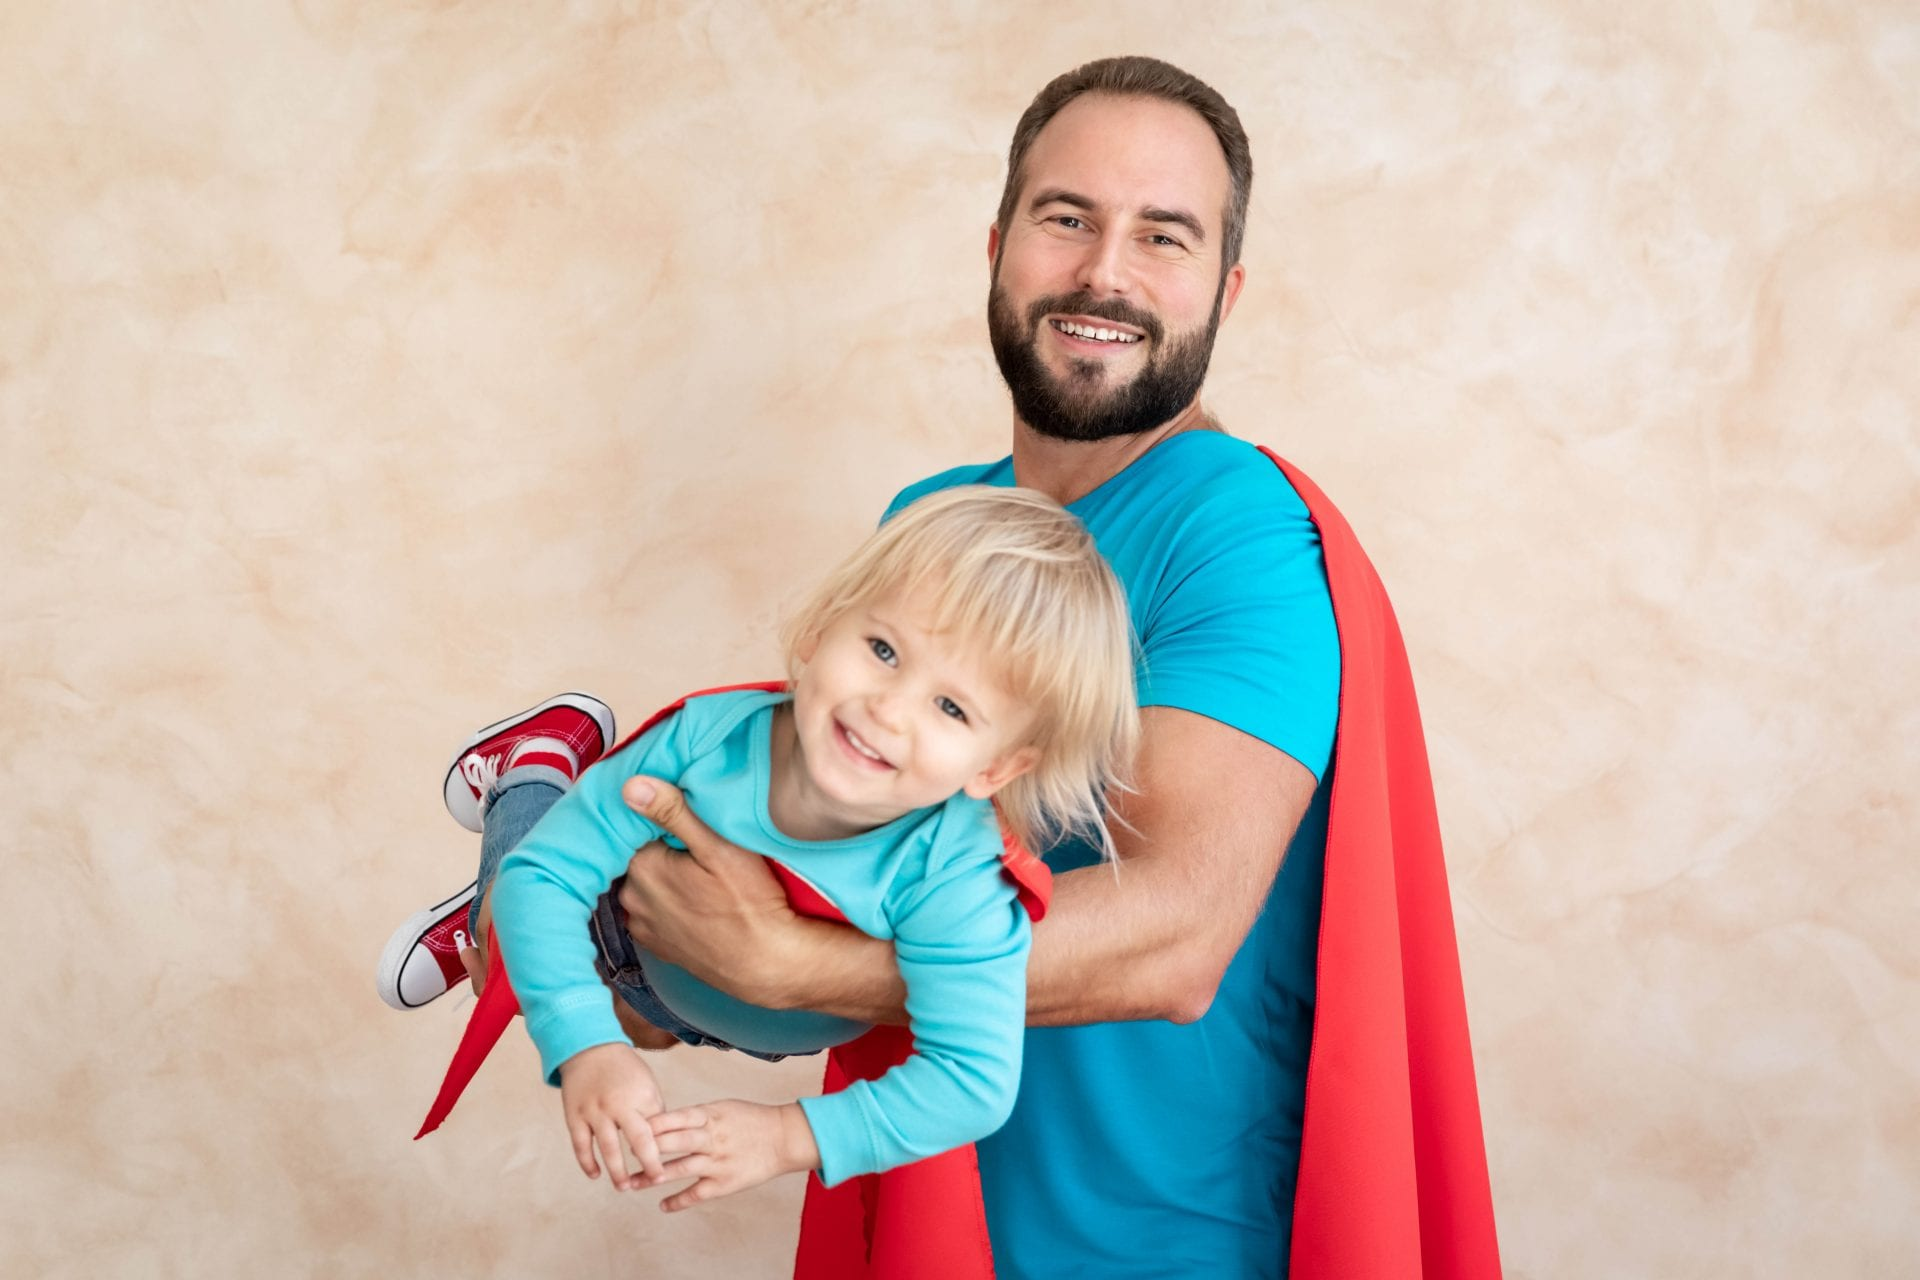 Kid & Dad | Superhero | YMCA